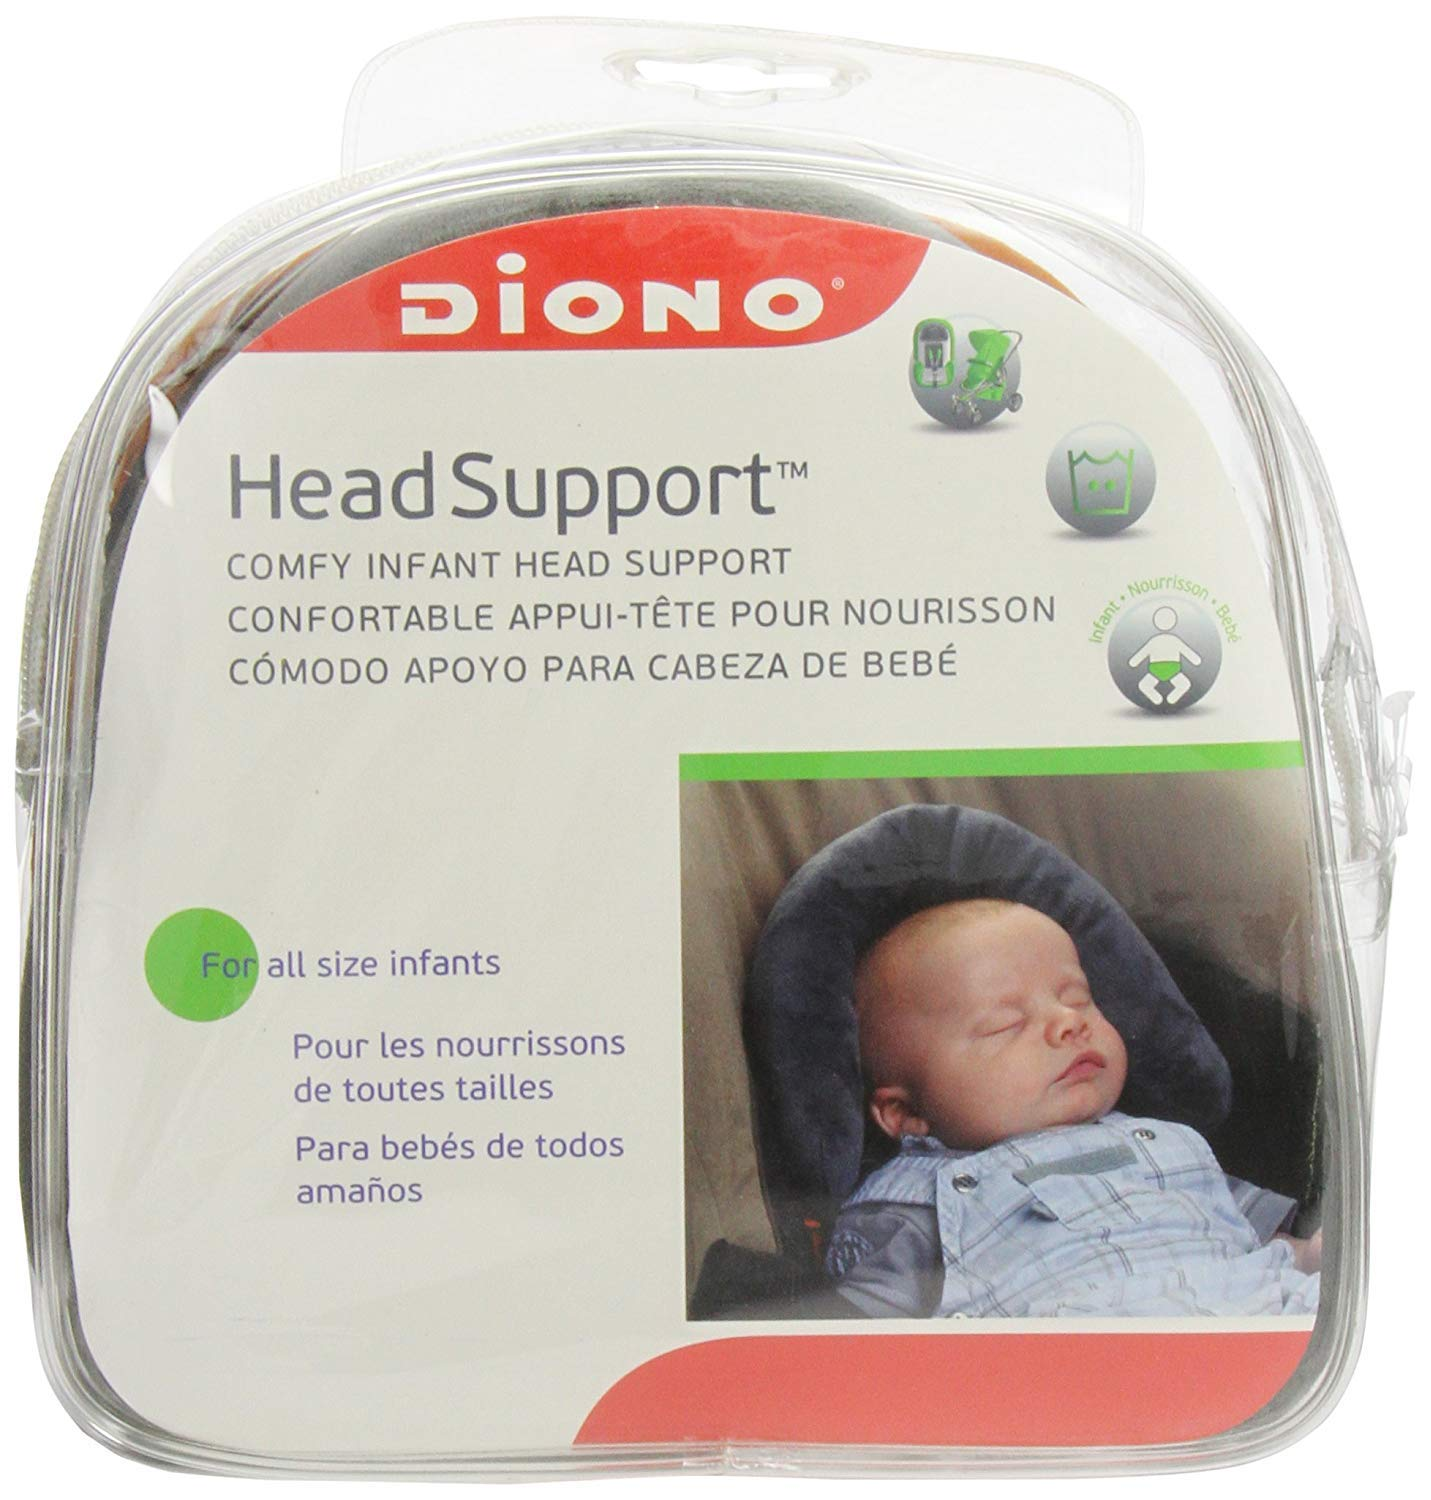 Diono Head Support, Protective Head Support for Use in Car Seats, Infant Carriers, and Strollers, Grey by Diono (Image #4)